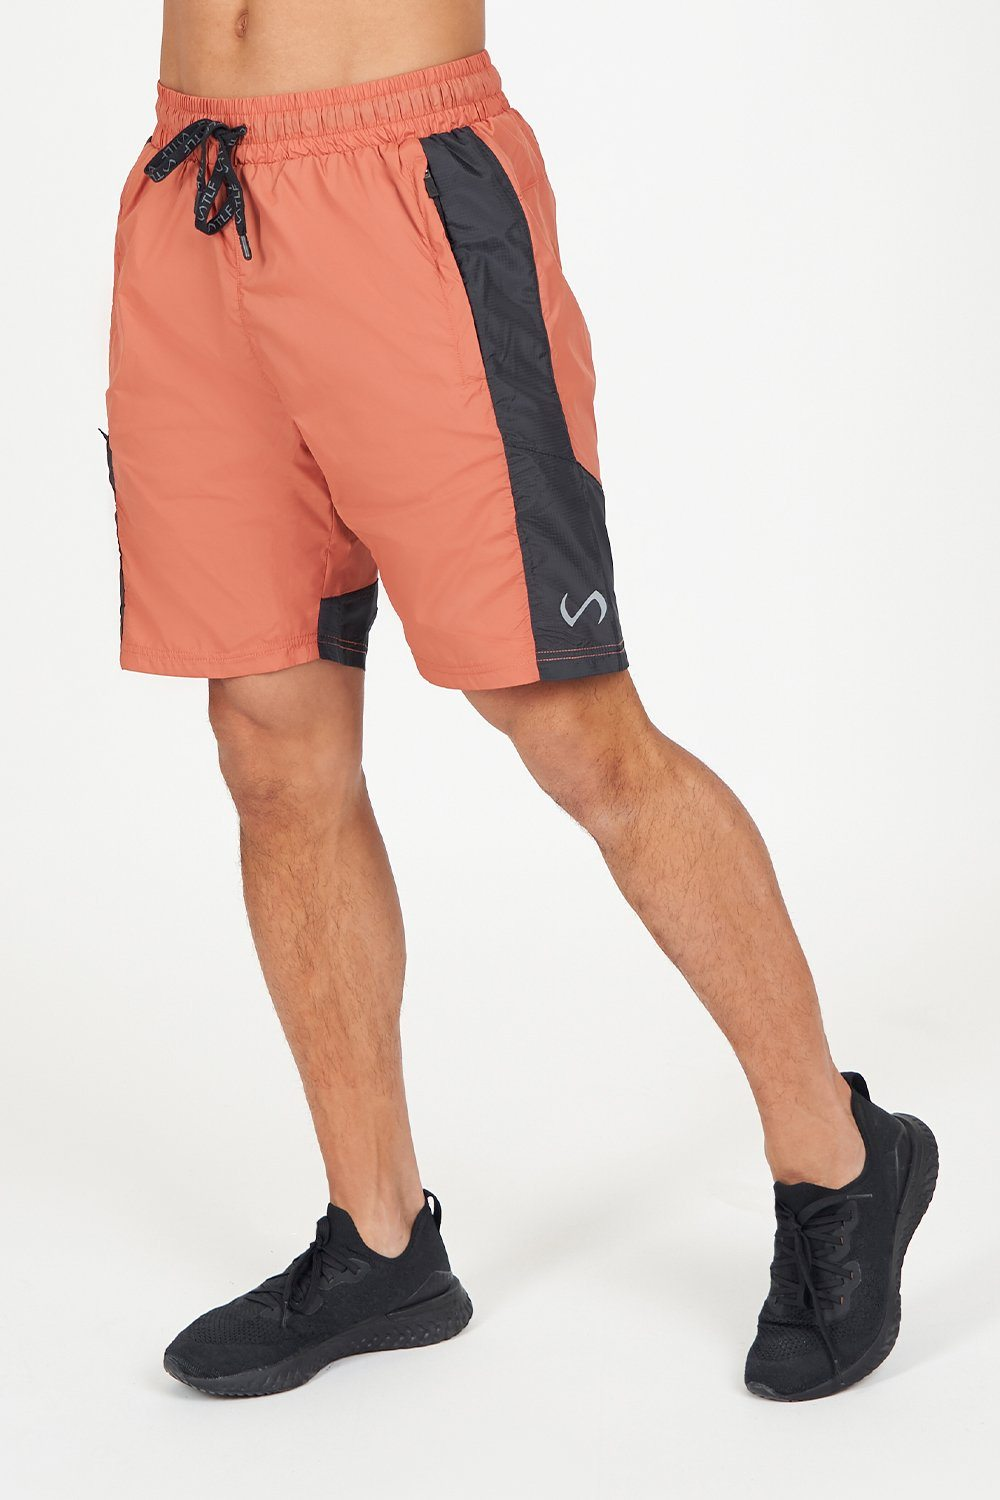 Gym-To-Street Surge Shorts - TLF Apparel | Take Life Further